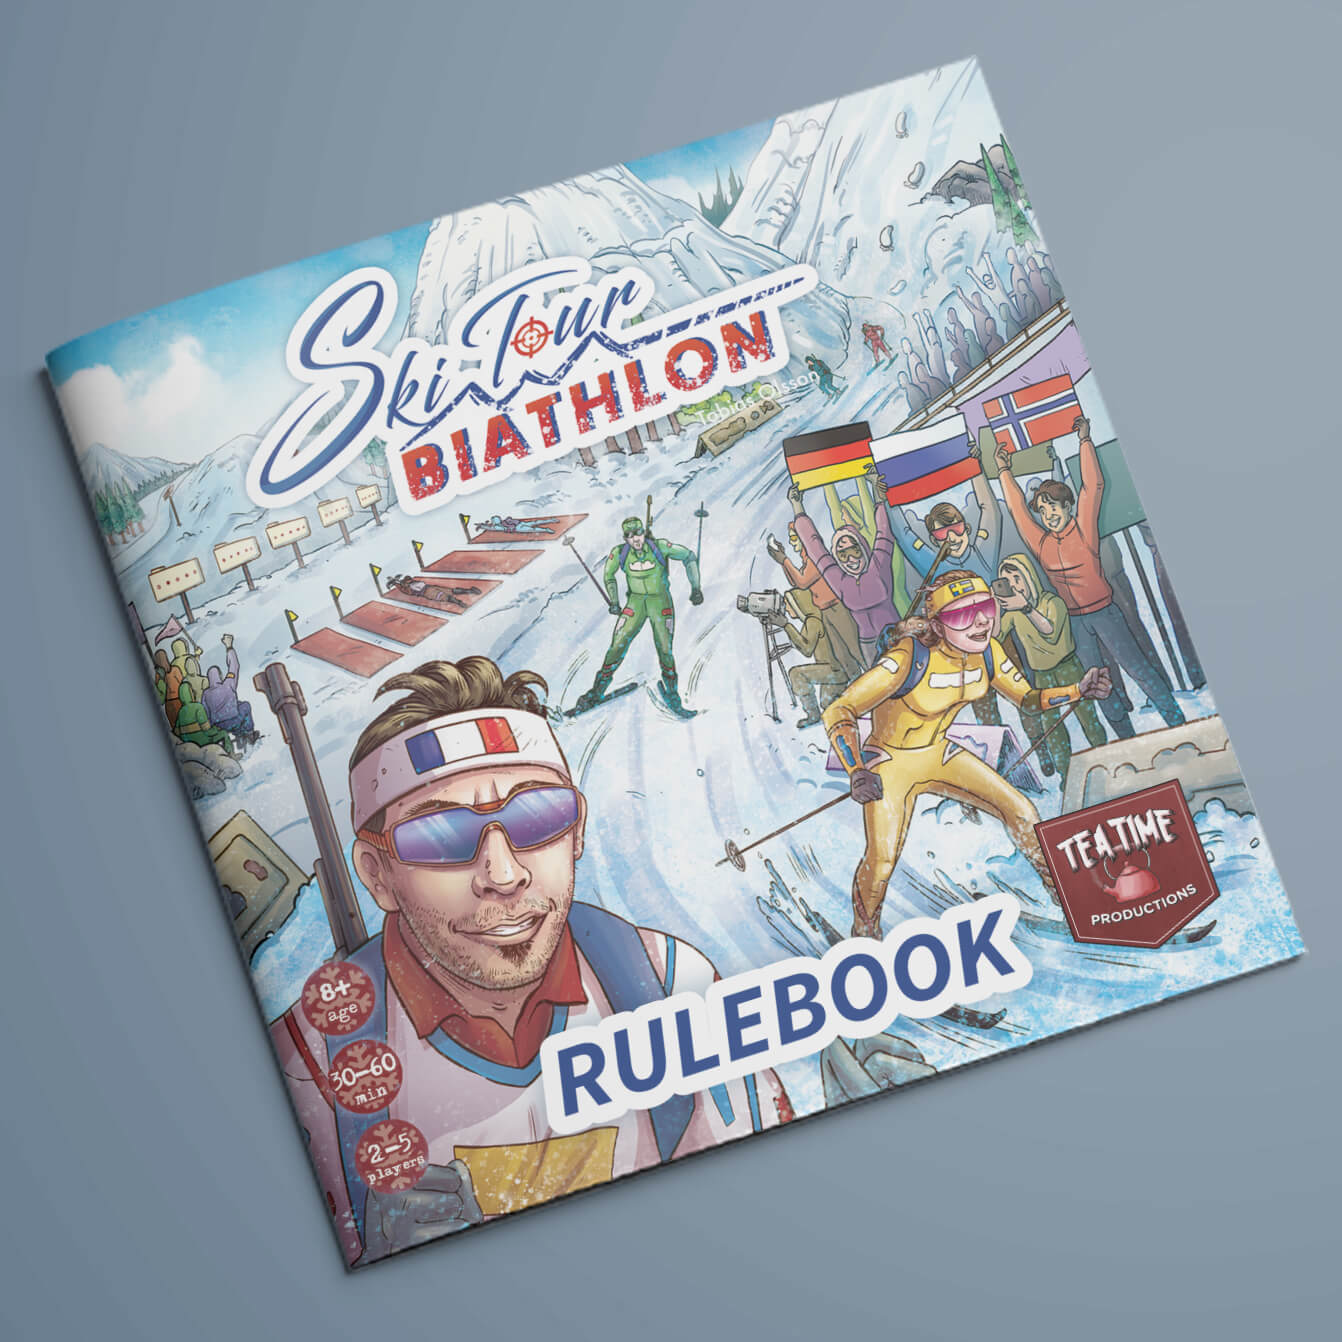 Ski Tour: Biathlon rulebook